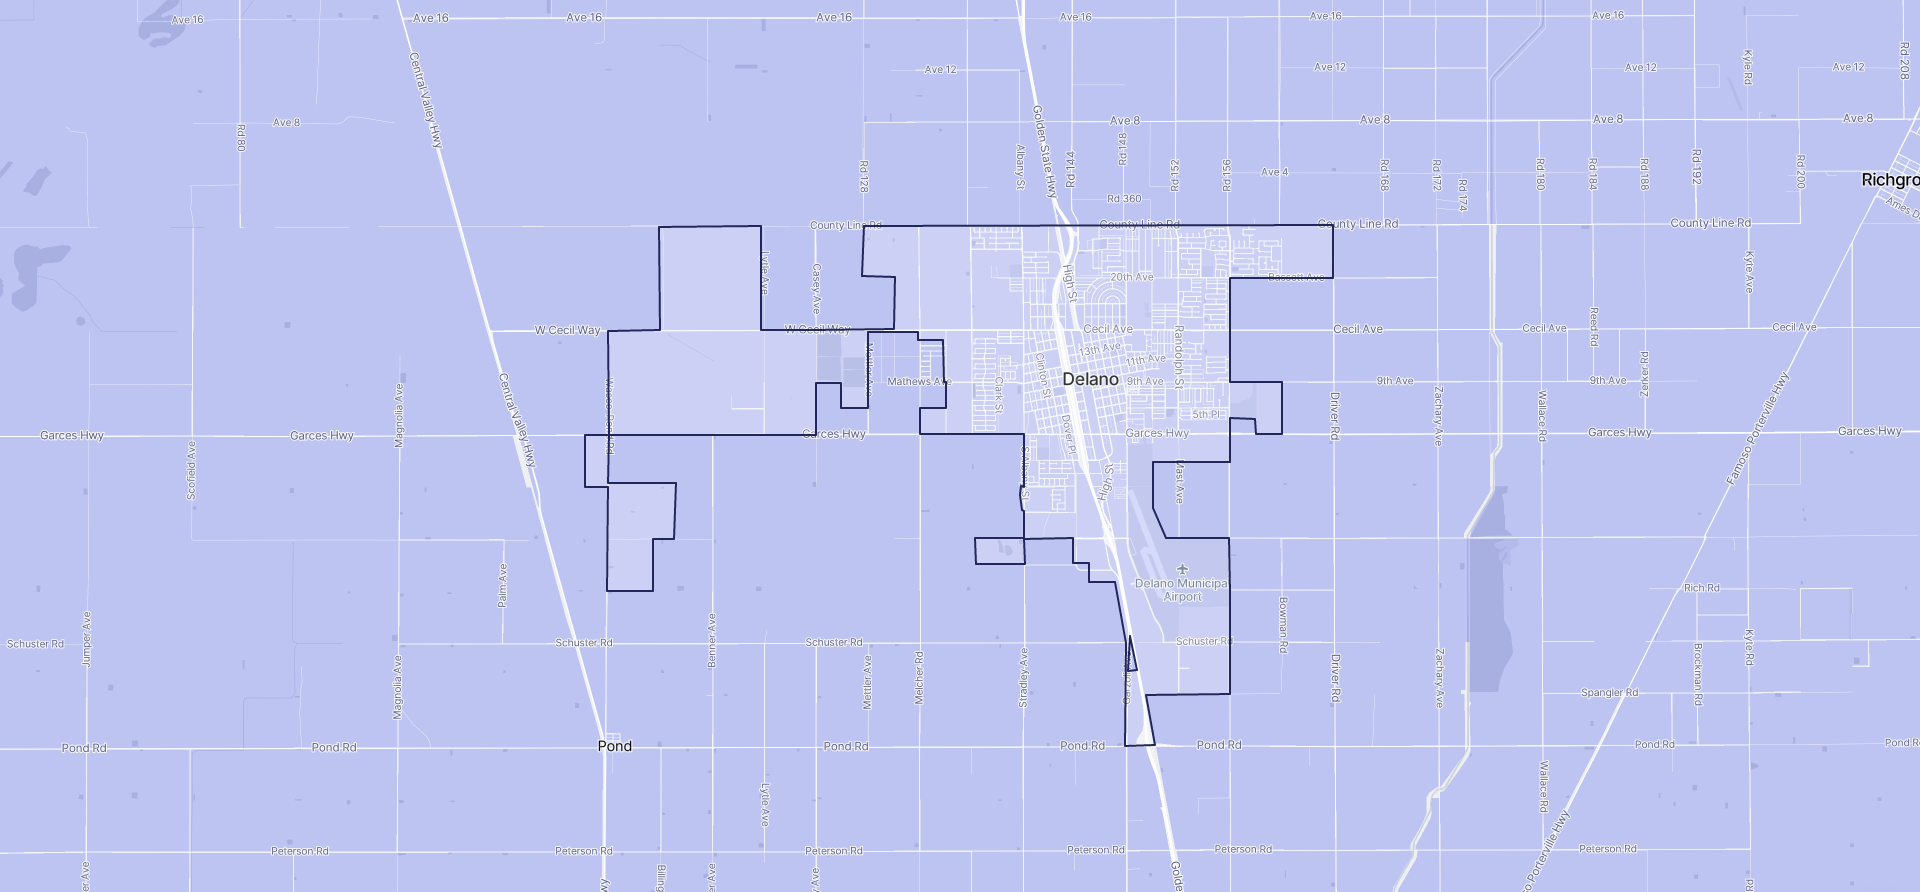 Image of Delano boundaries on a map.